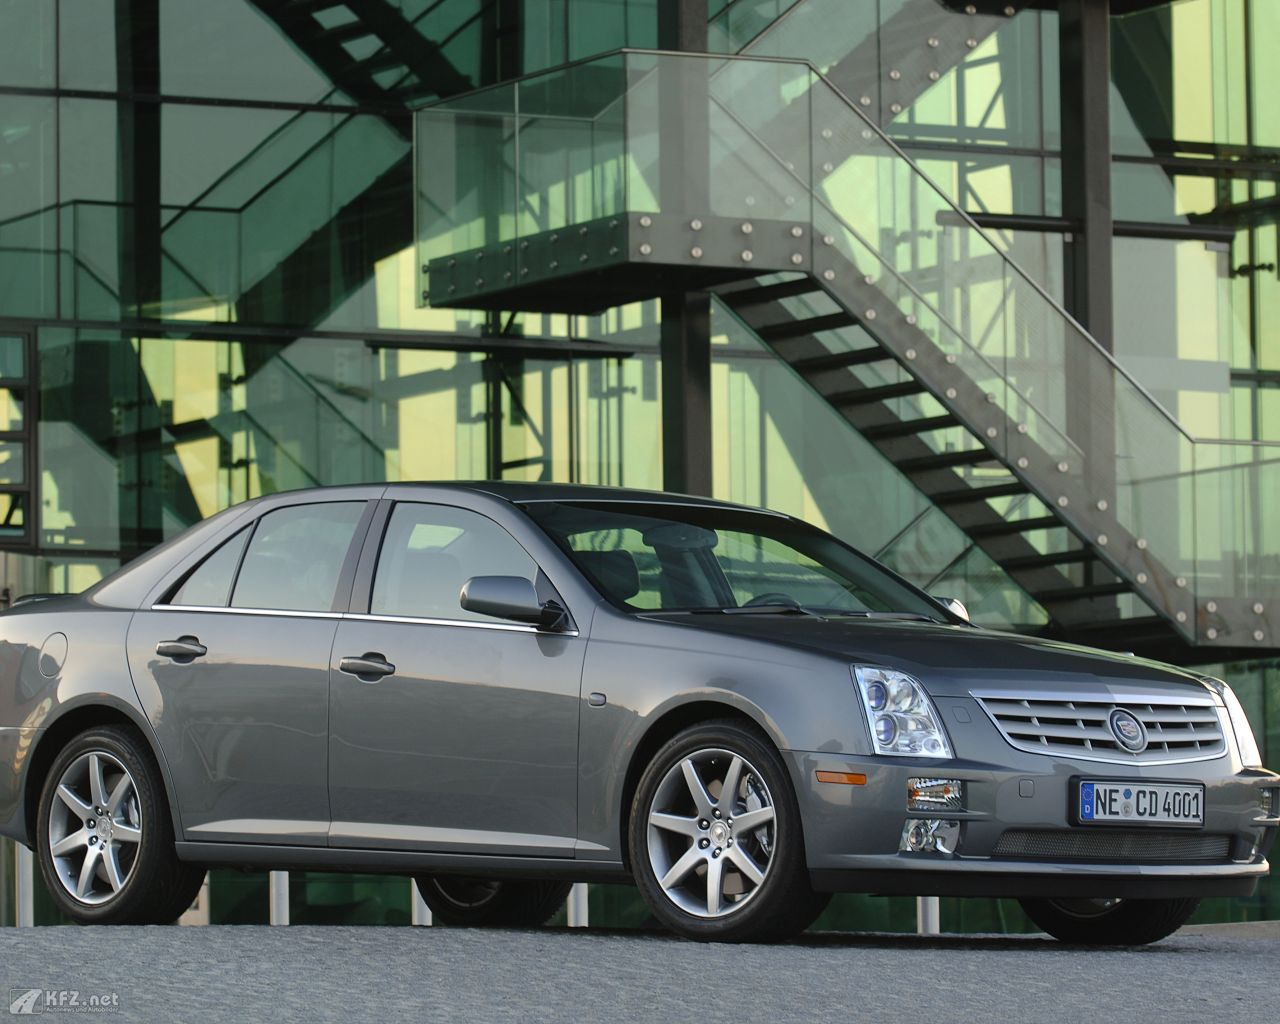 cadillac-sts-1280x1024-3